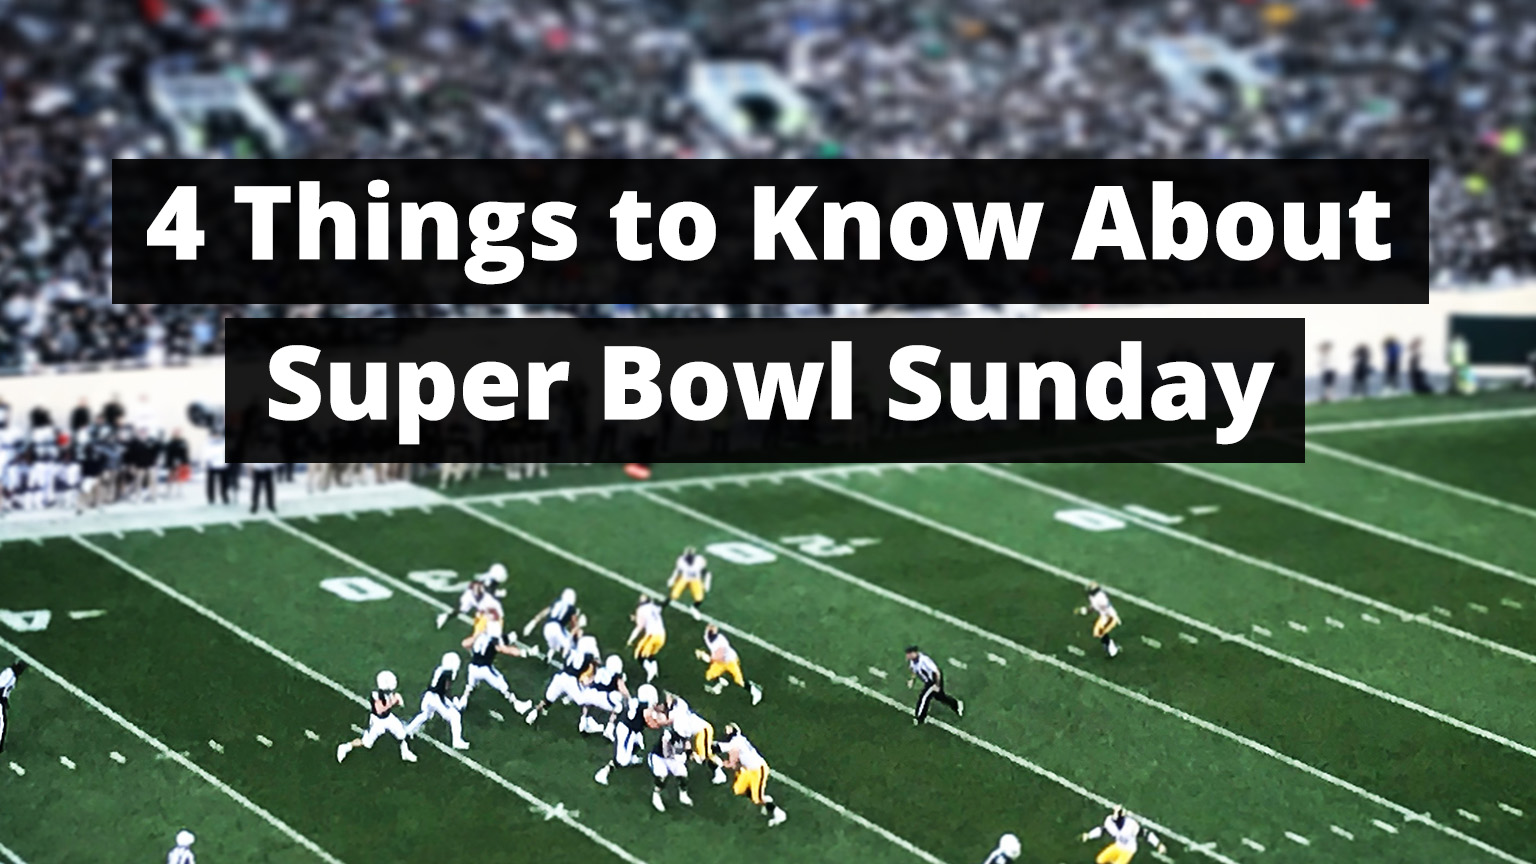 Super Bowl Sunday cover - football field with players rushing